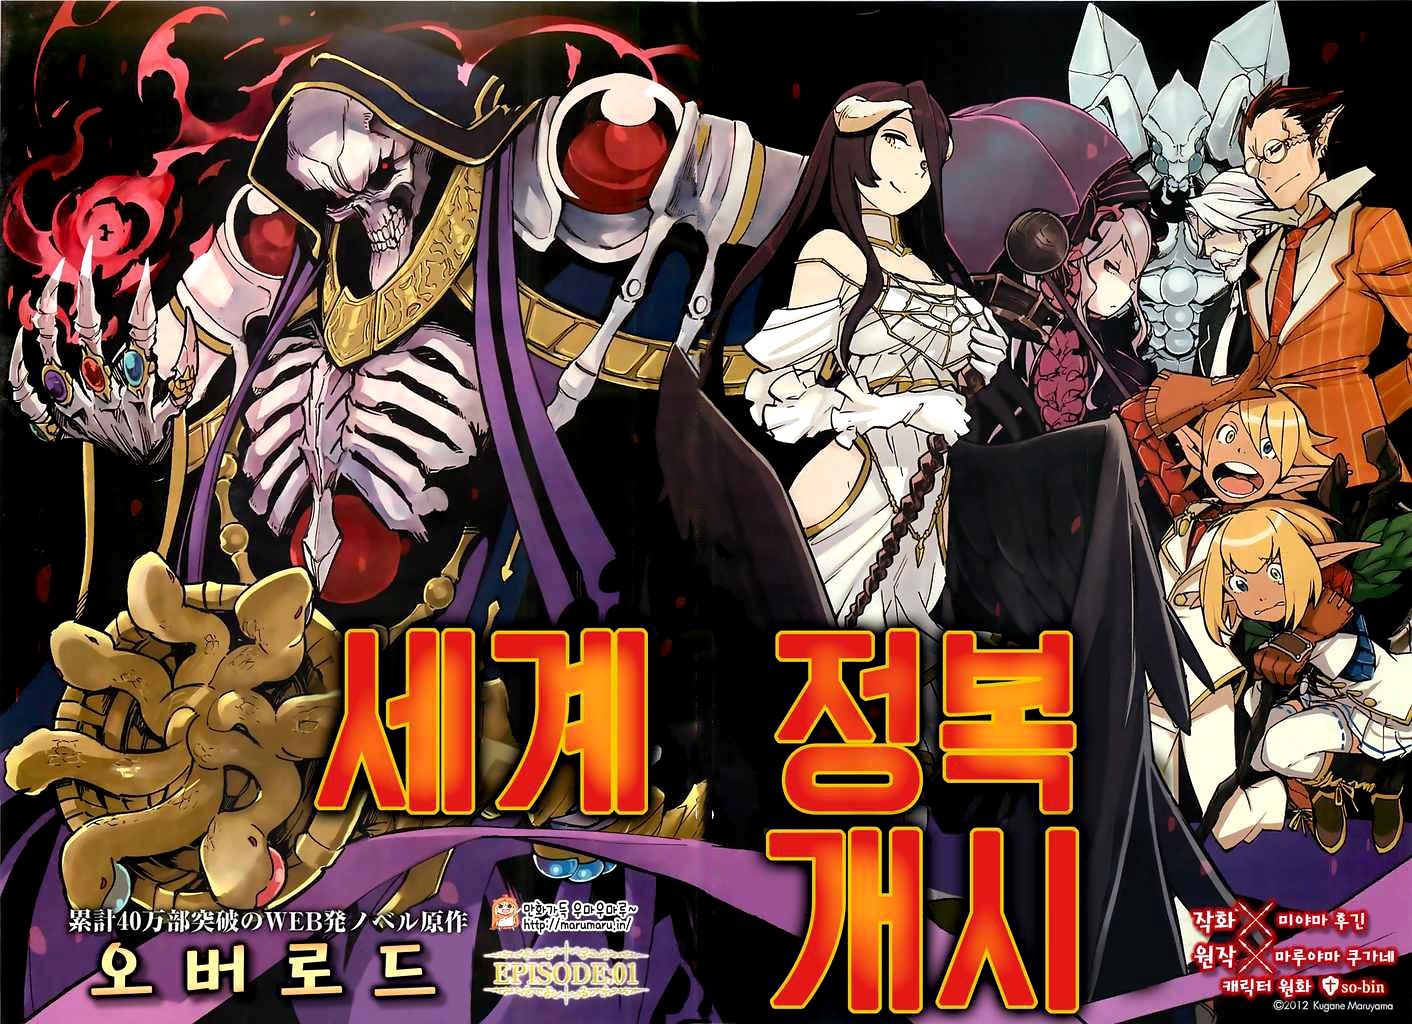 Overlord Manga | Overlord Wiki | FANDOM powered by Wikia